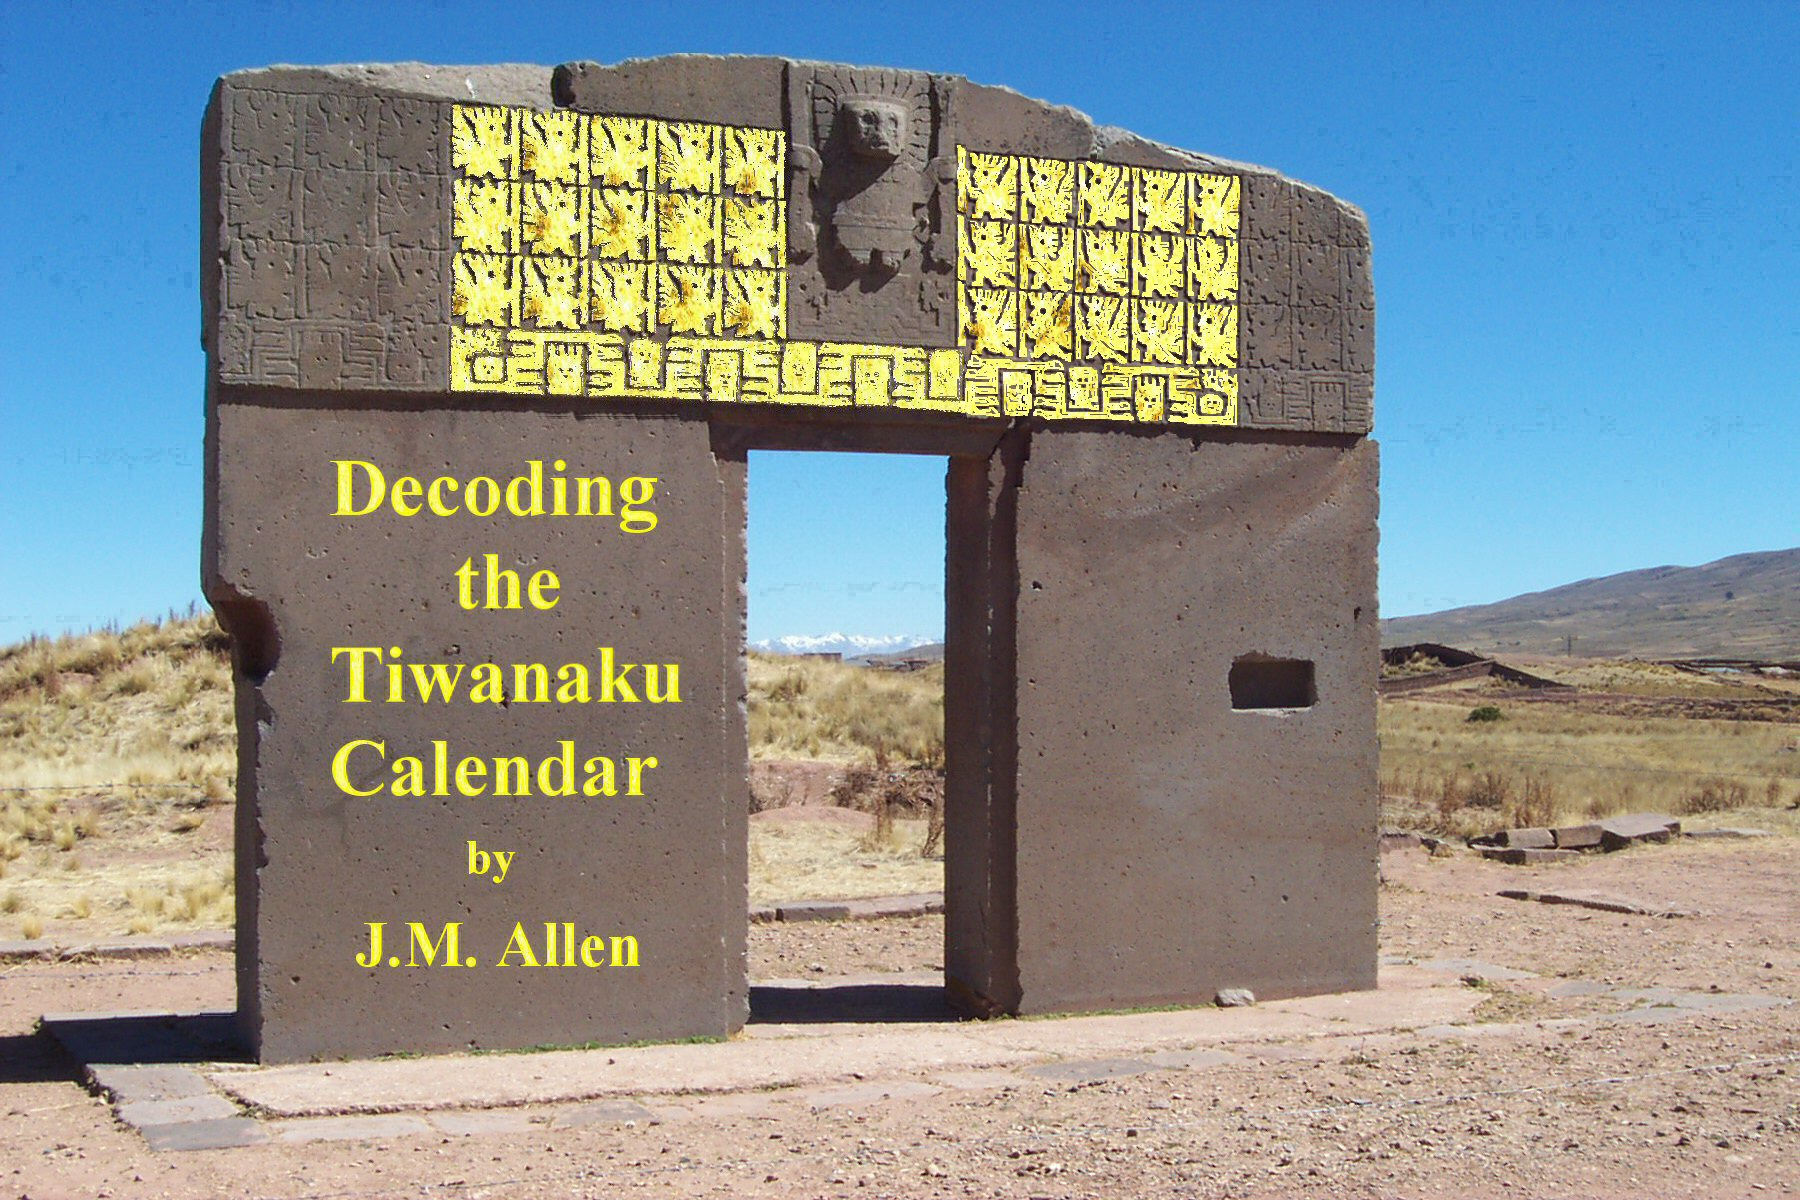 Decoding the Tiwanaku calendar